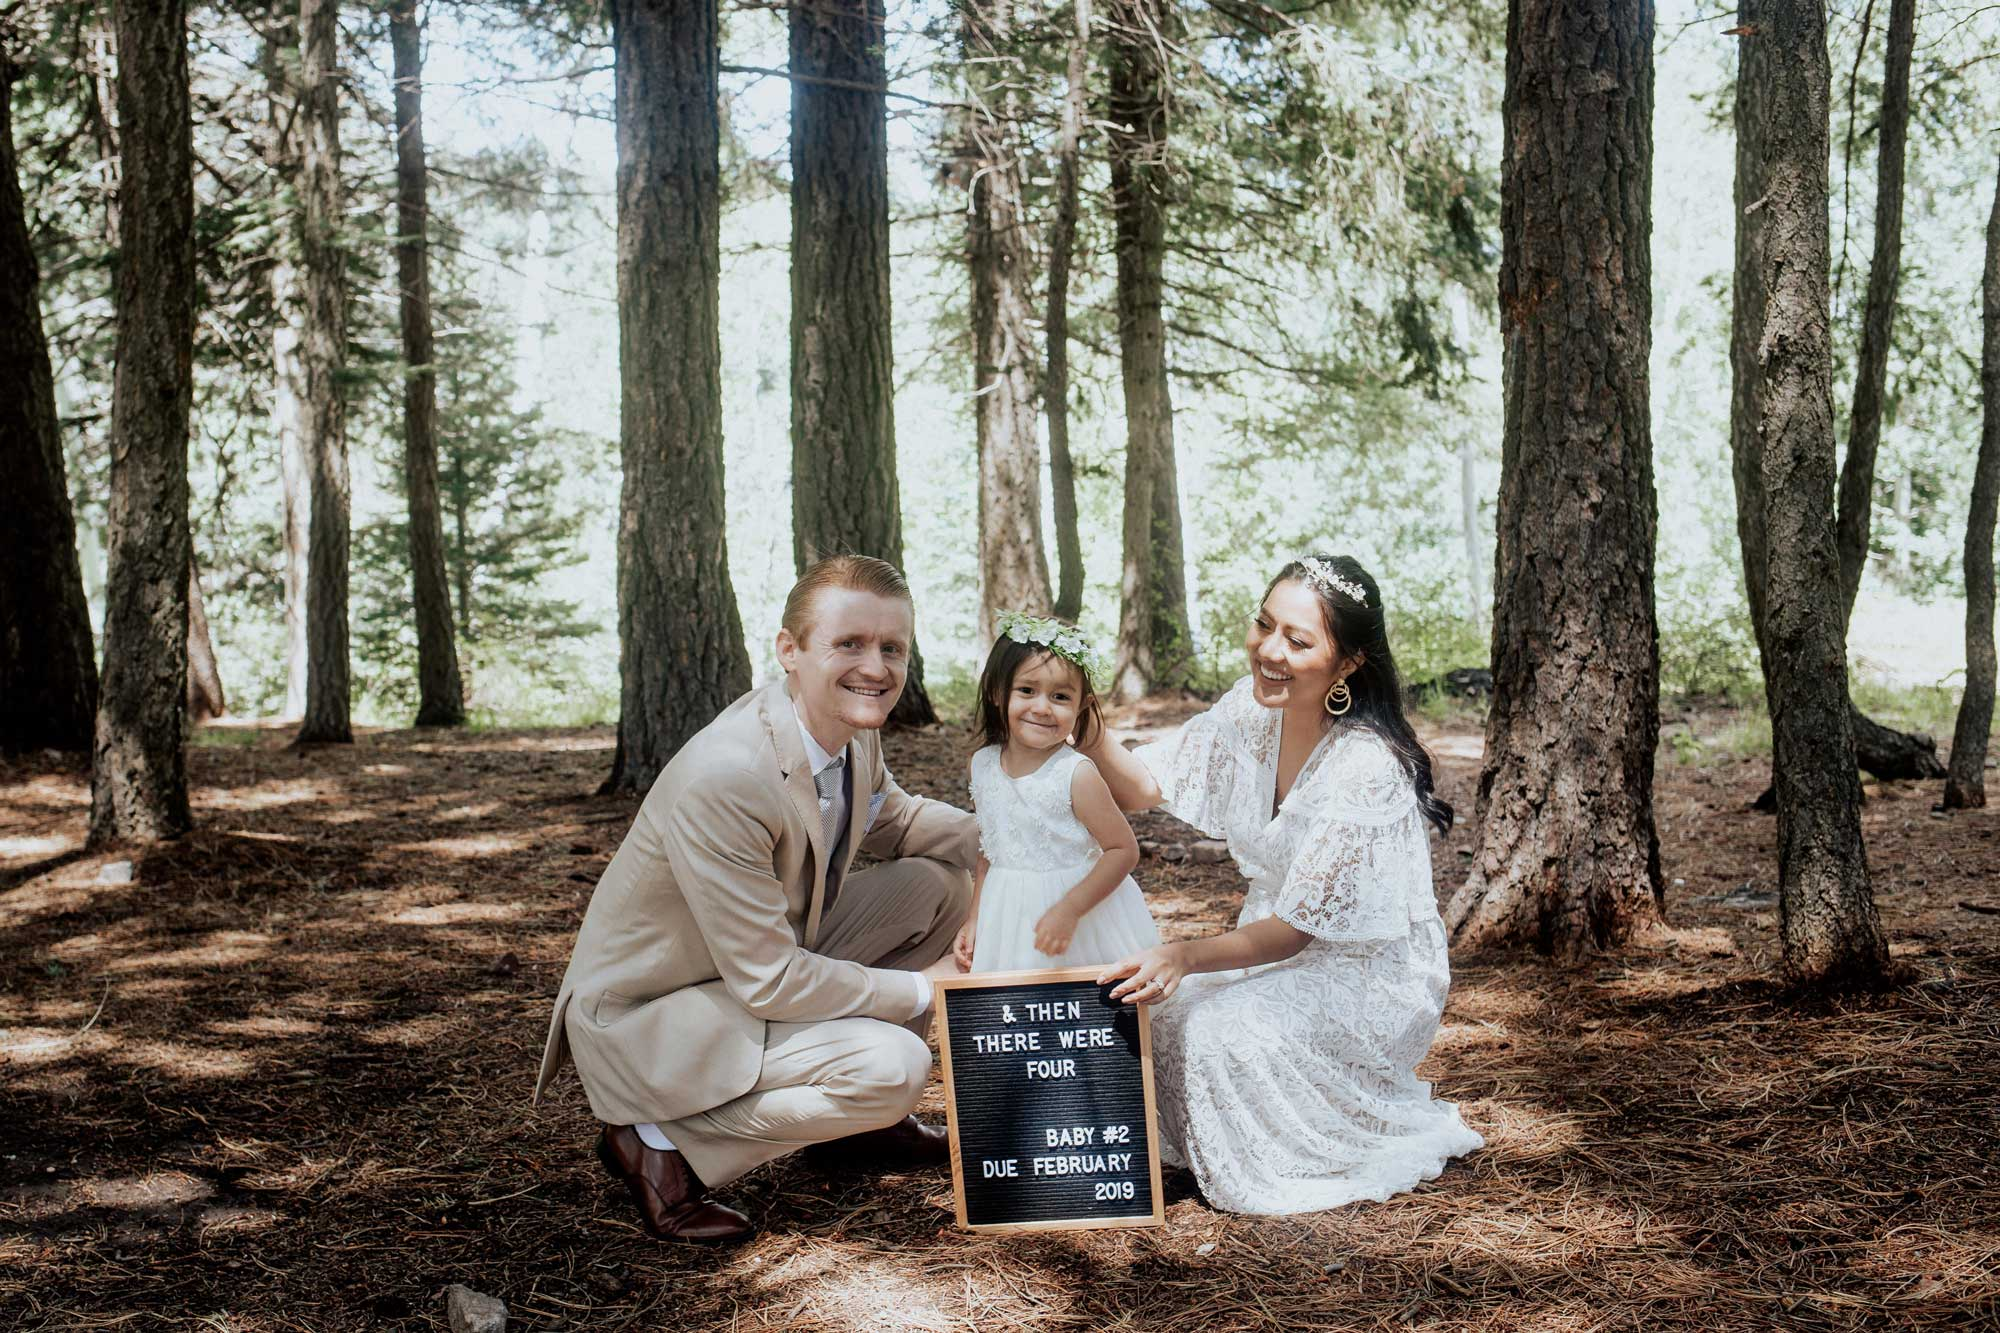 Pregnancy Announcement Baby Number 2_TheVibesCloset_Molly Larsen_Style Blogger_mom Blogger_Beauty Blogger_family picture_13